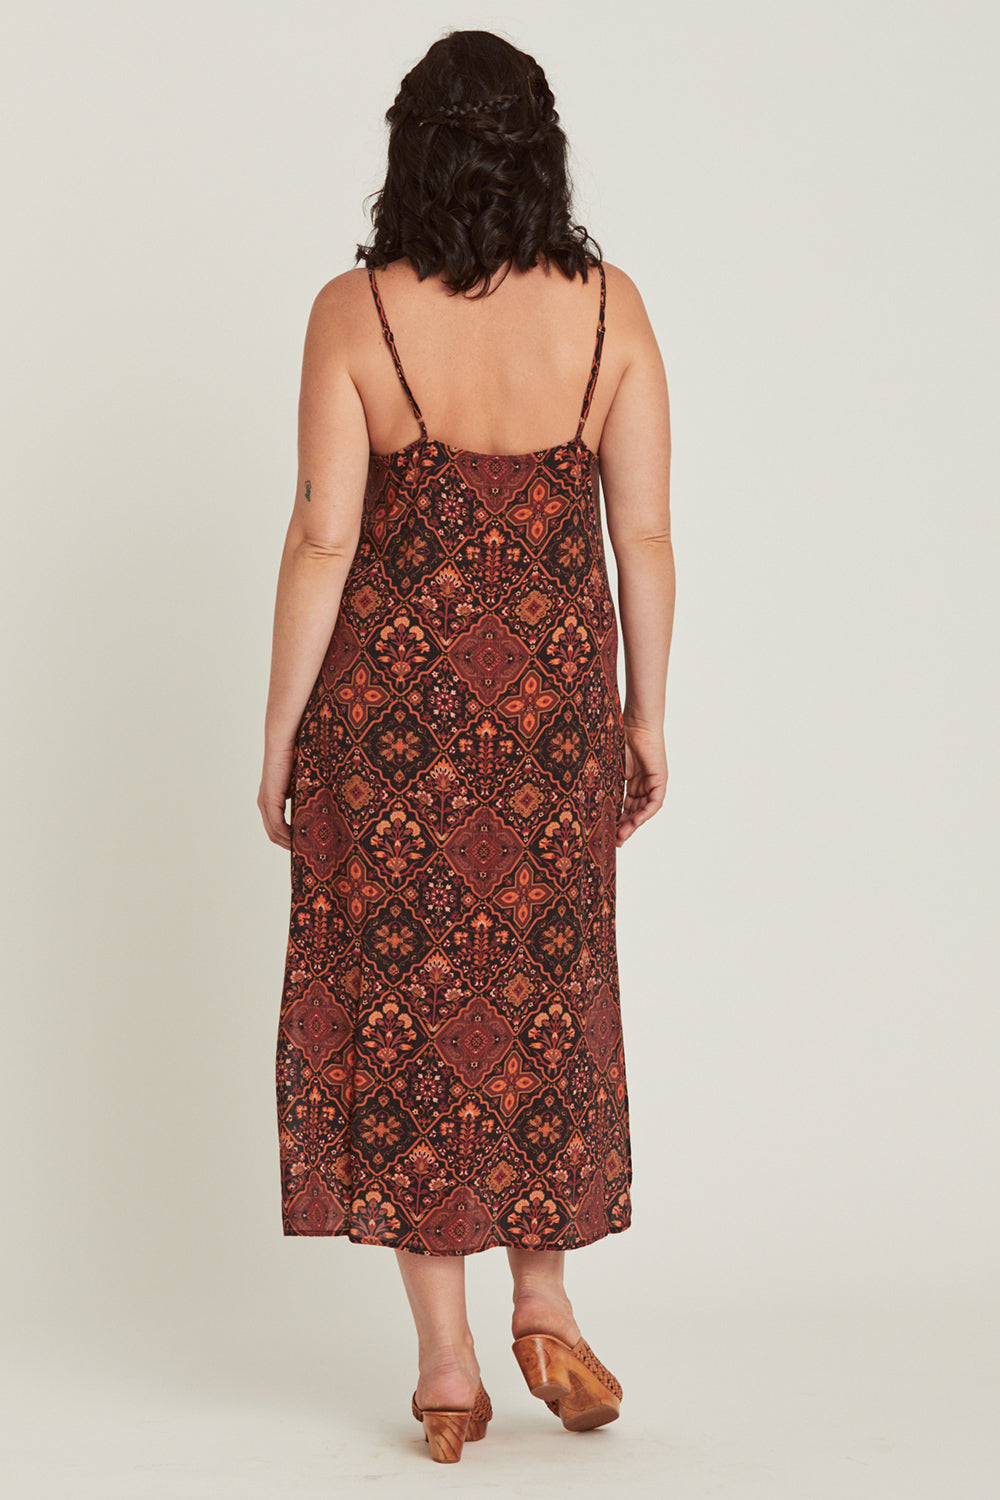 Zephyr Slip Dress in Pepper